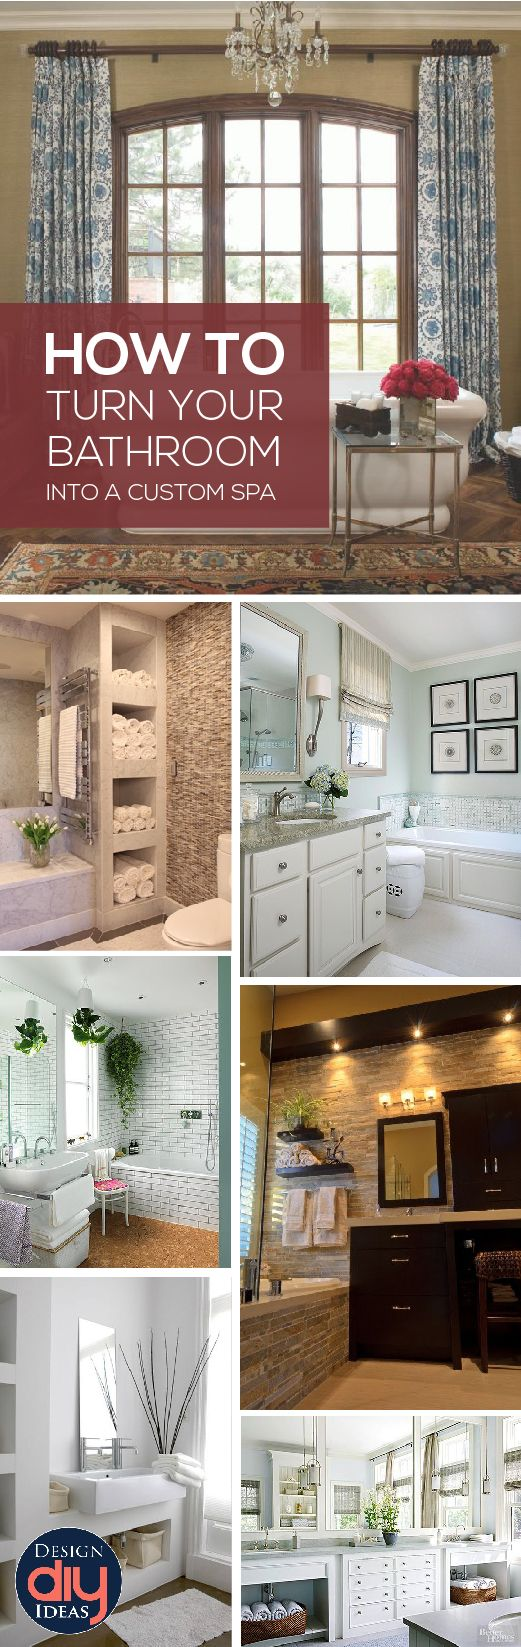 Salle De Bain Giovanni ~ upgrade your bathroom and turn it to a custom spa with a few diy